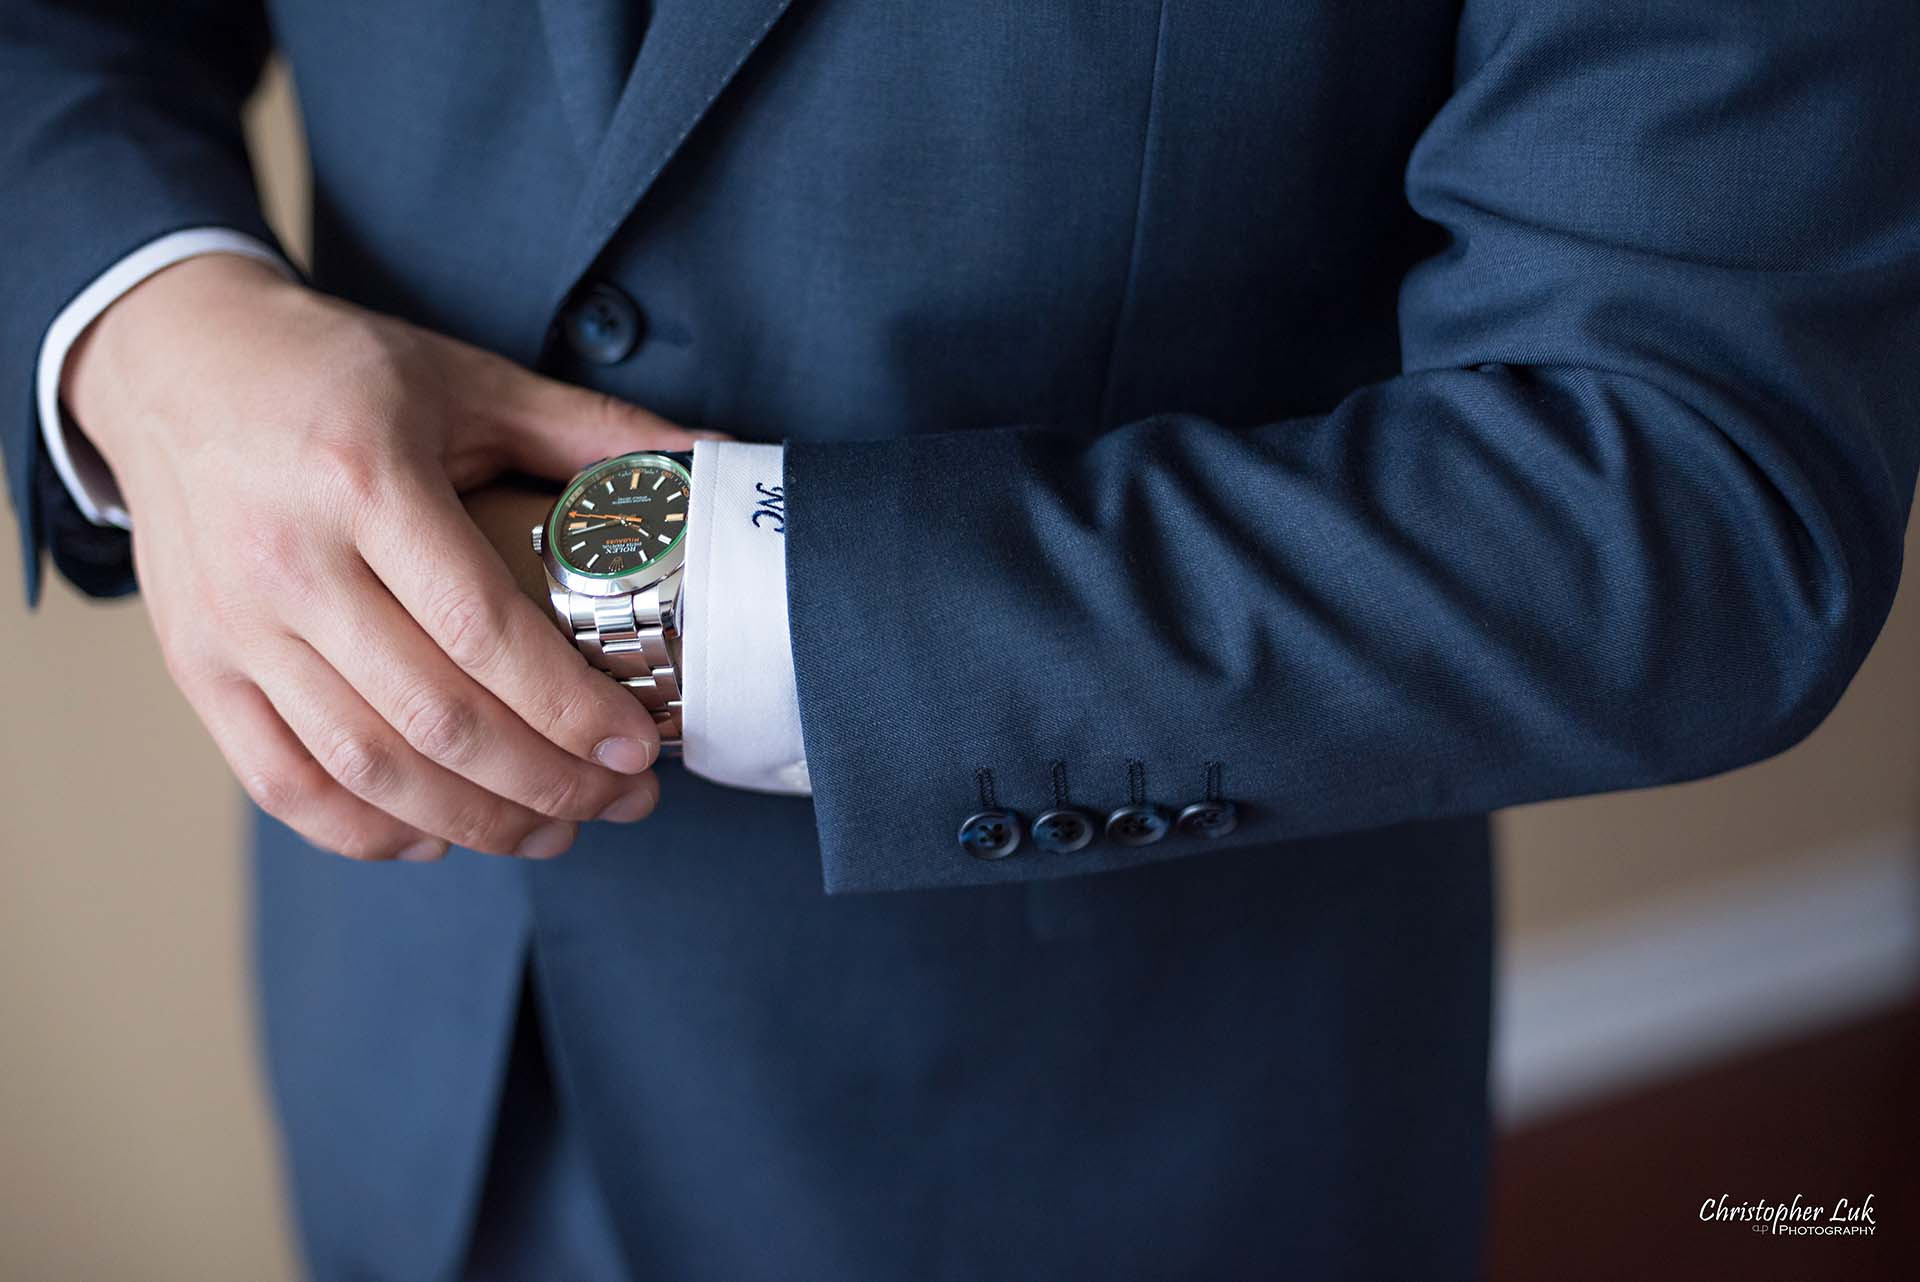 Christopher Luk Toronto Wedding Photographer Groom Getting Ready Preparations Natural Candid Photojournalistic Wingmen Suits Custom Made to Measure Navy Blue Suit Rolex Watch Detail Close